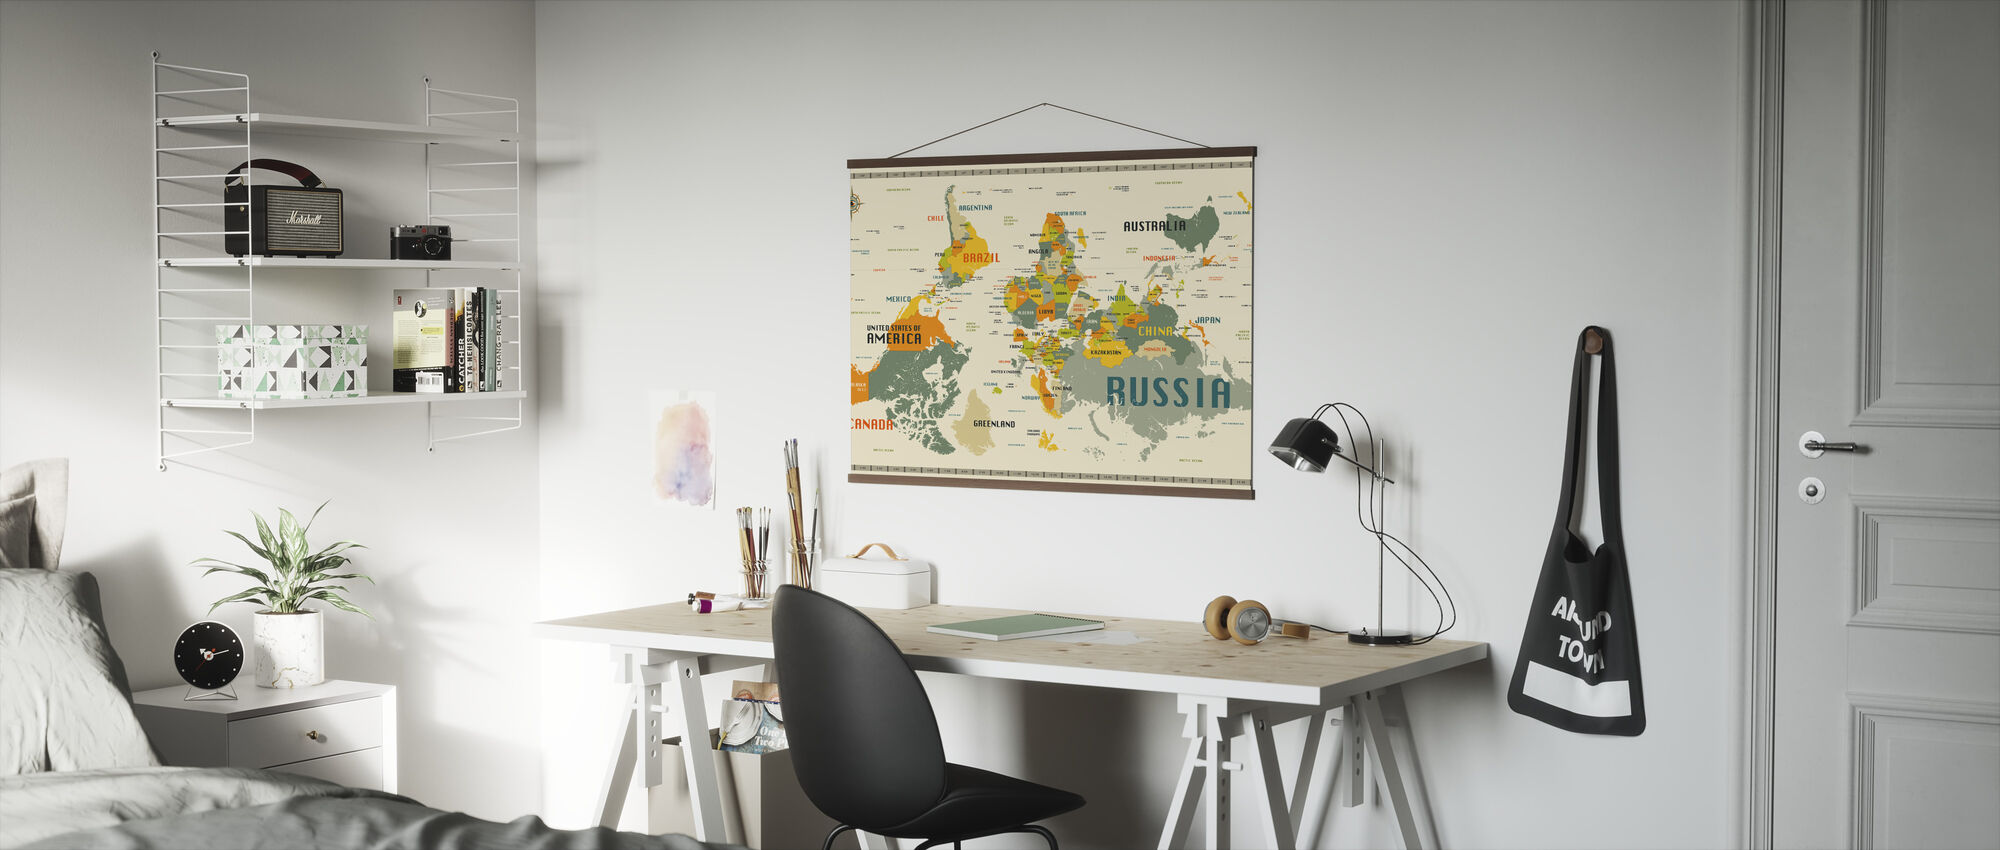 World Map Explore Upside Down - Poster - Office